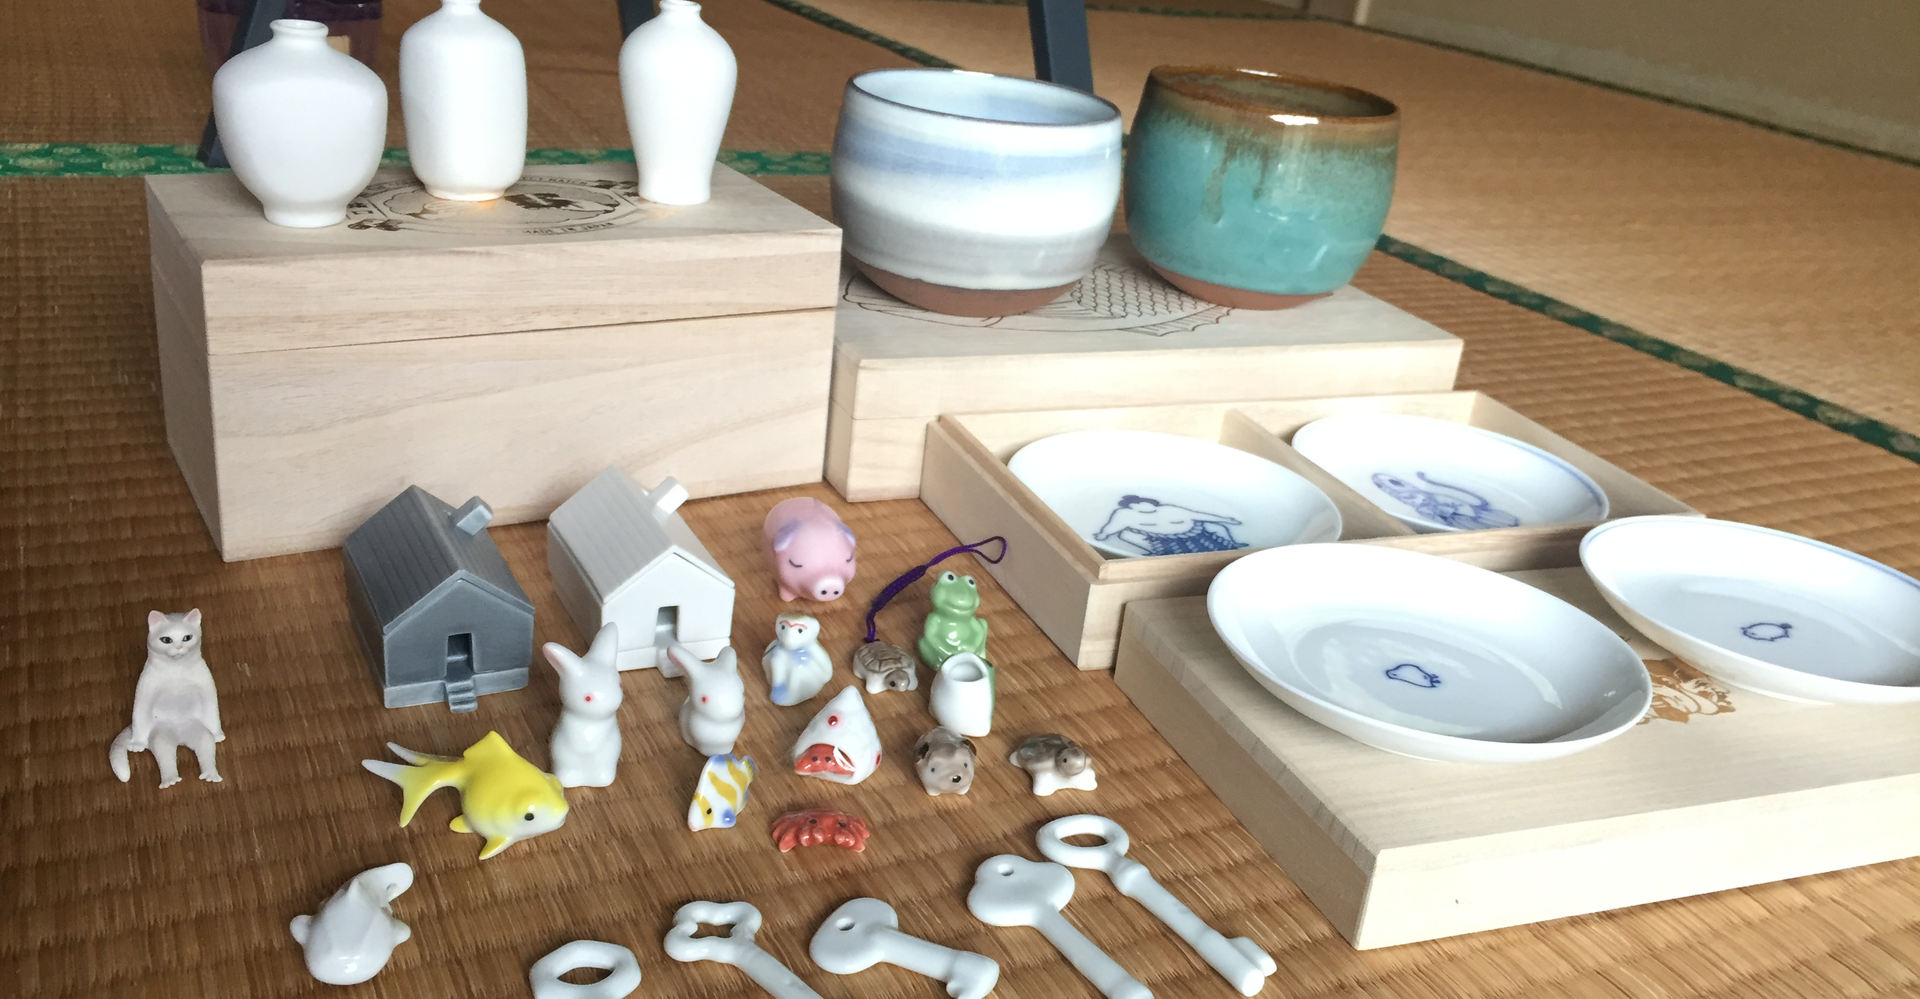 What did Jeremie collect from Kyushu?